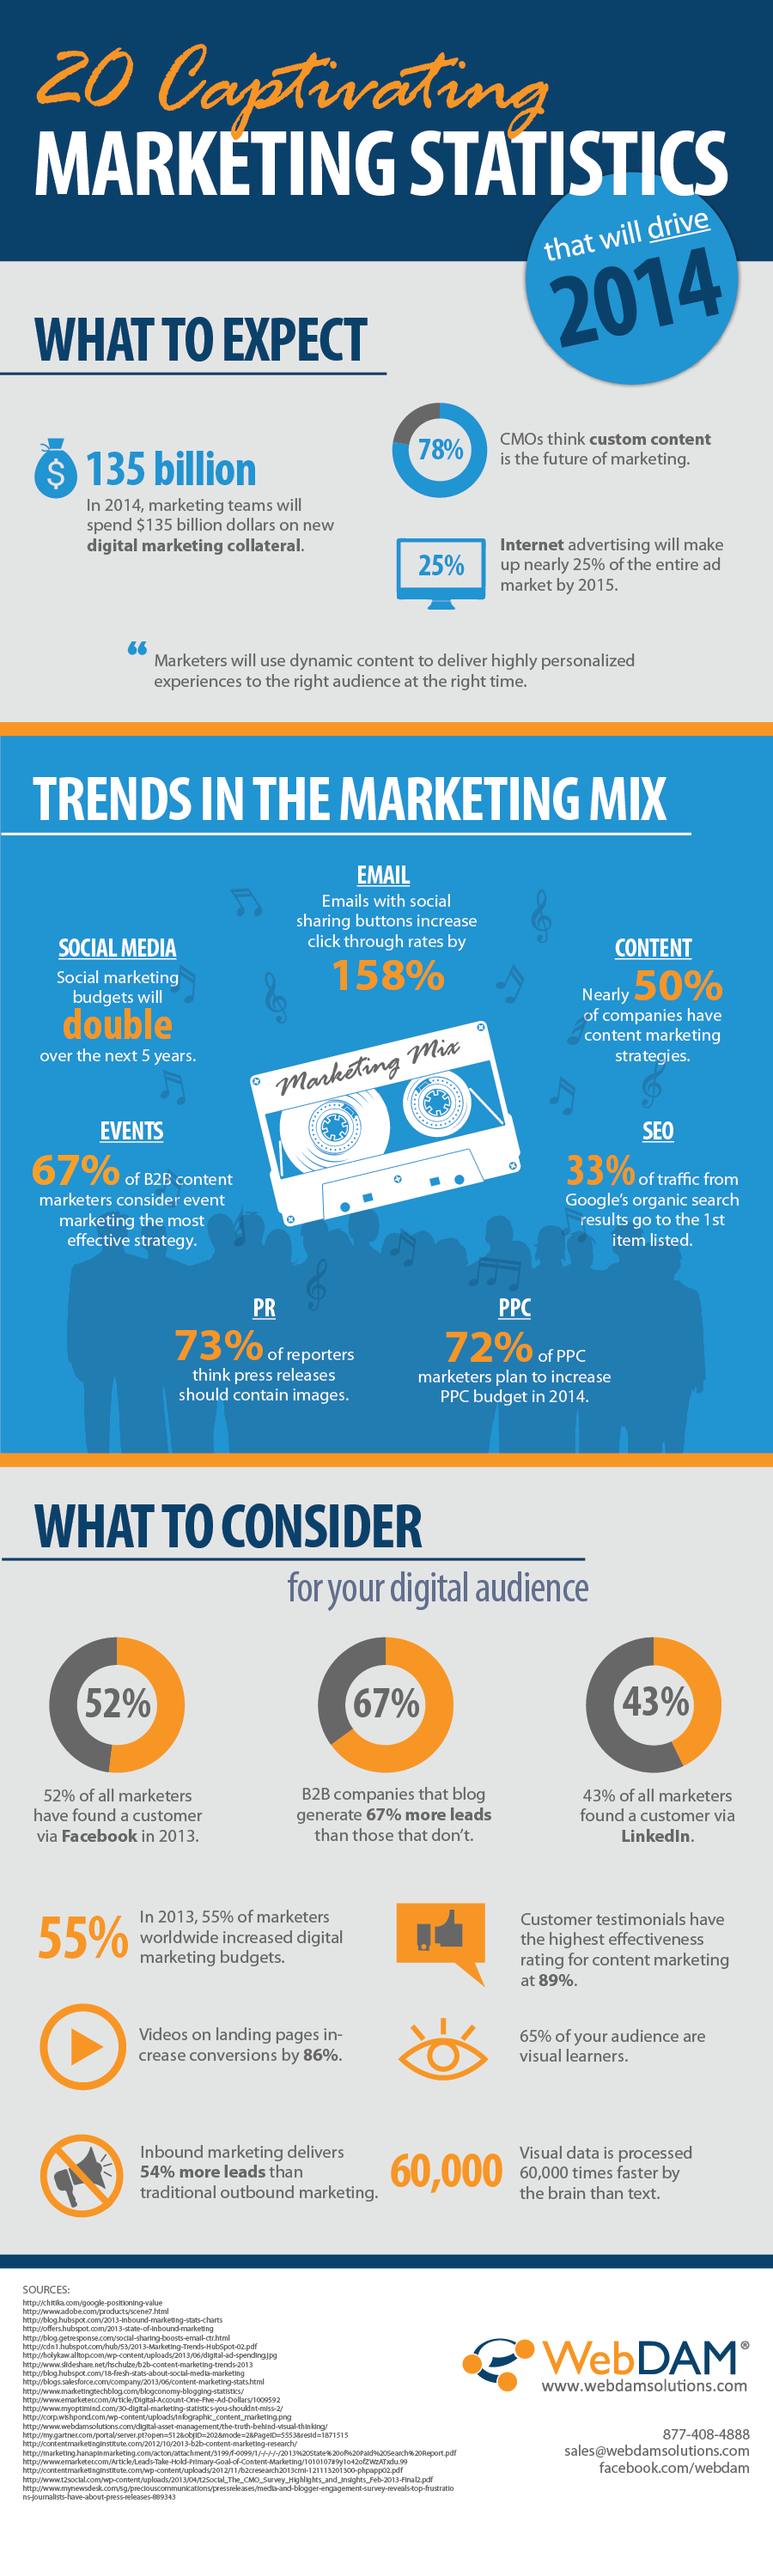 20 Captivating Content Marketing Facts and Figures in 2014